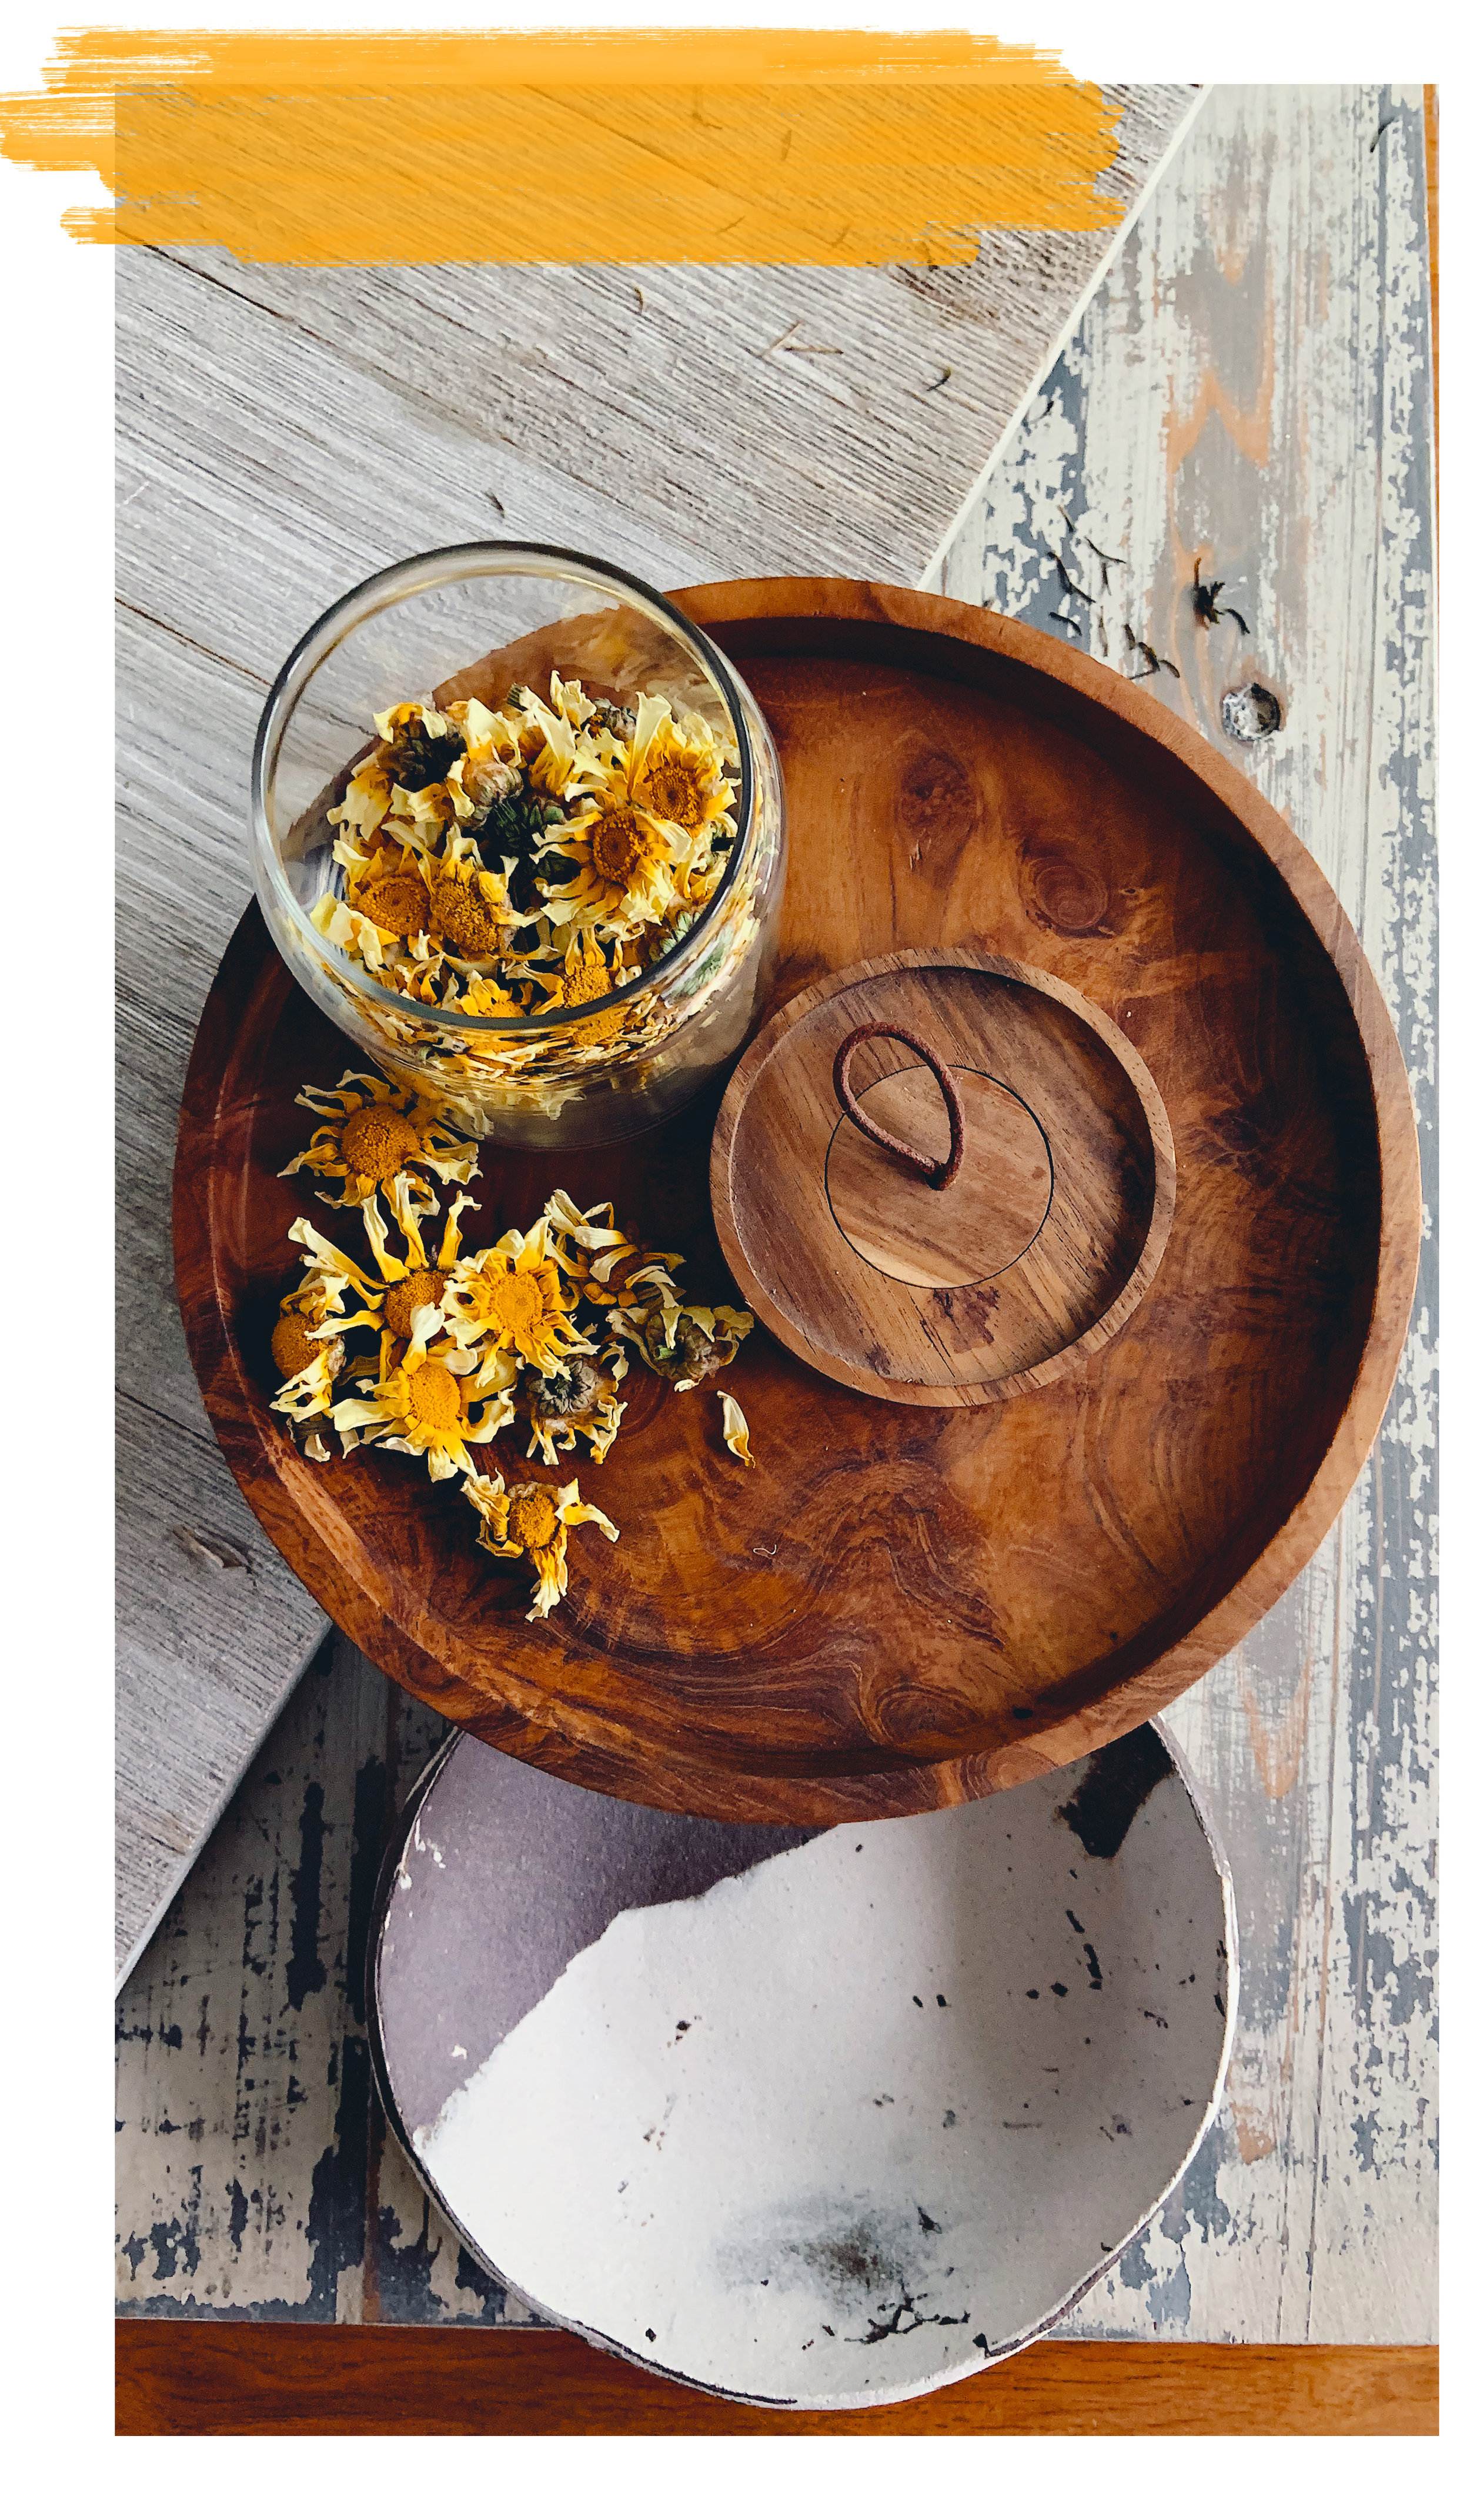 edible chrysanthemum dried flowers.jpg